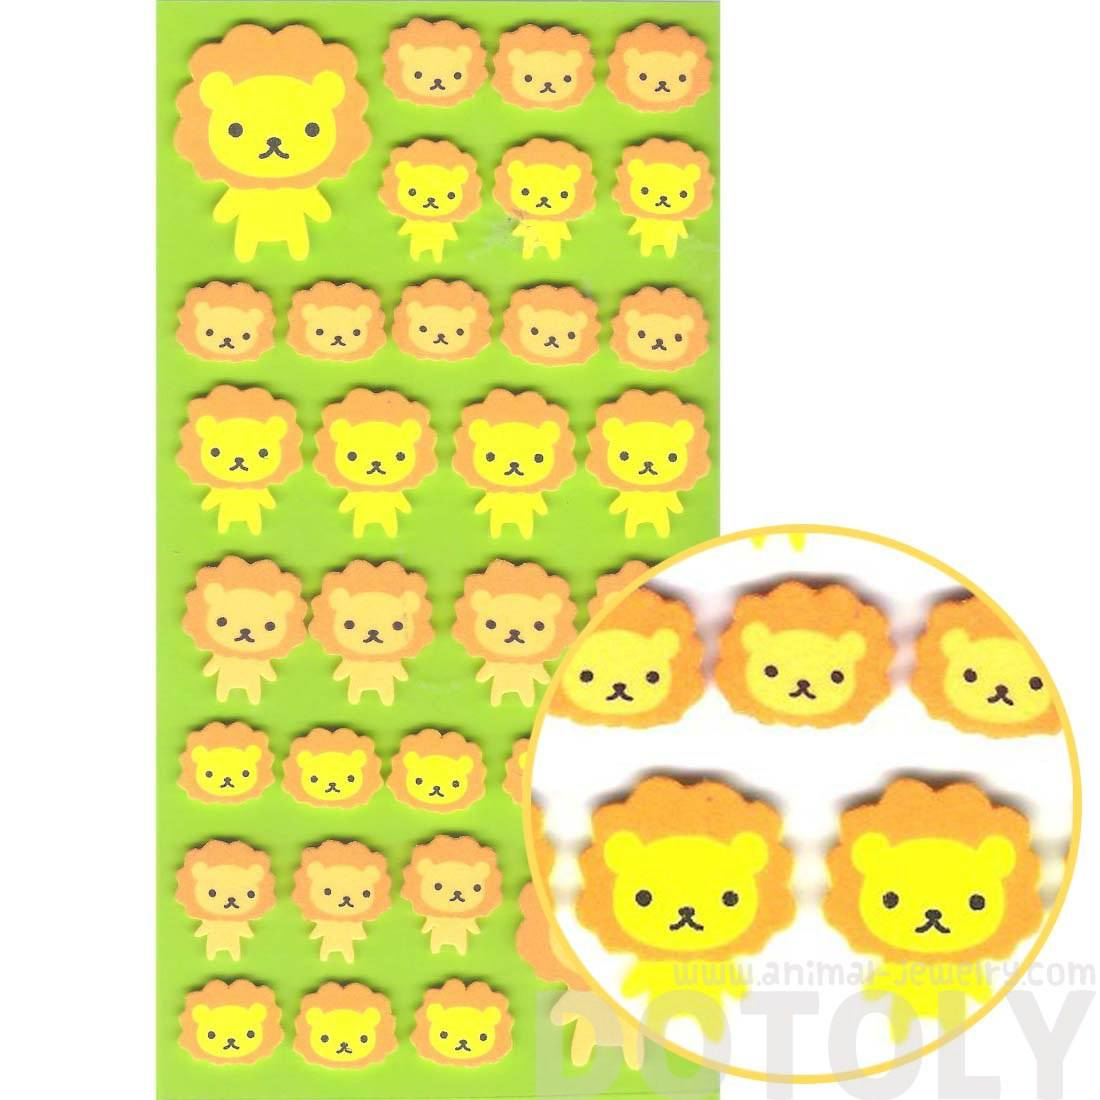 Simple Lion Animal Shaped Foam Plastic Stickers for Scrapbooking